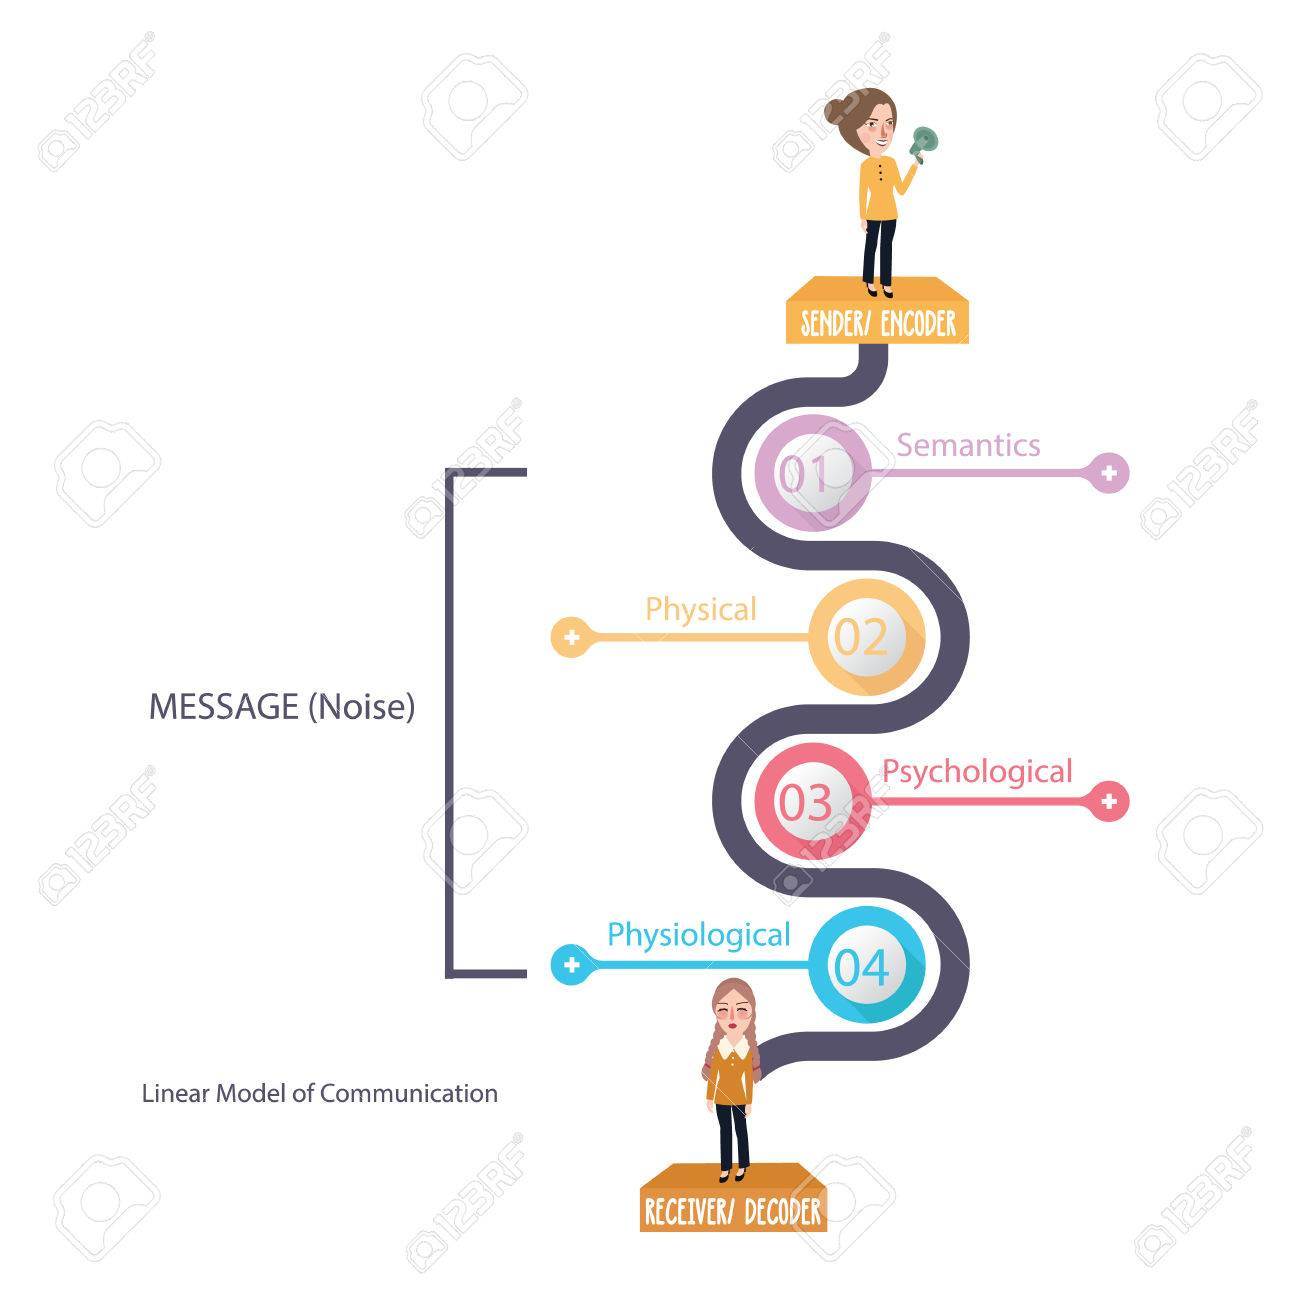 Linear model of communication diagram theory message and noise linear model of communication diagram theory message and noise vector stock vector 82516074 ccuart Images